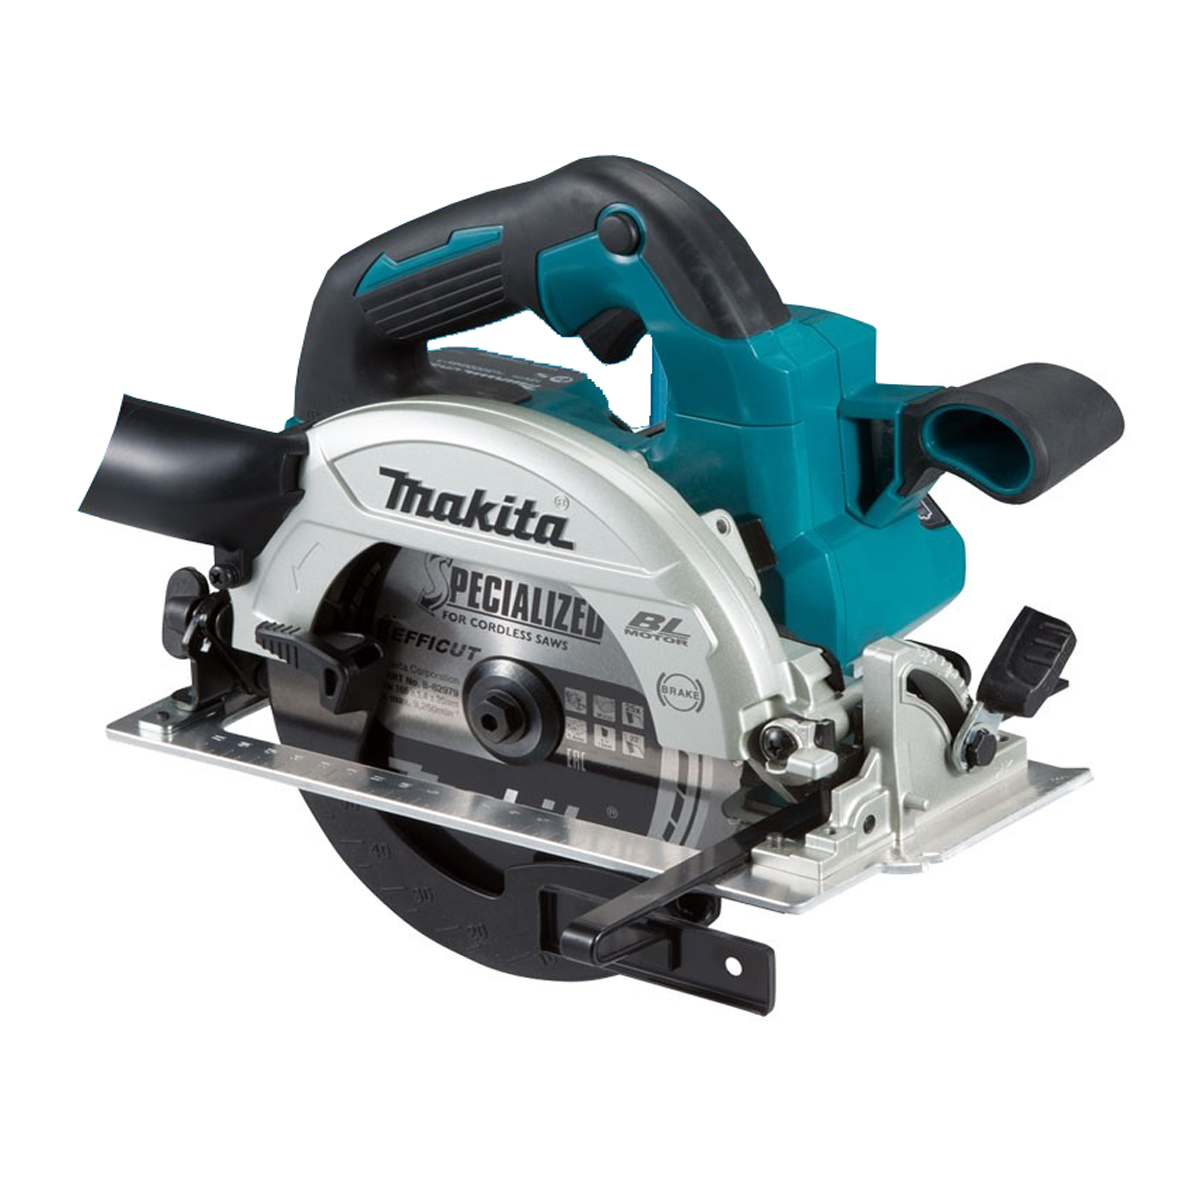 Makita DHS660 18V Brushless 165mm Circular Saw LXT - Body Only